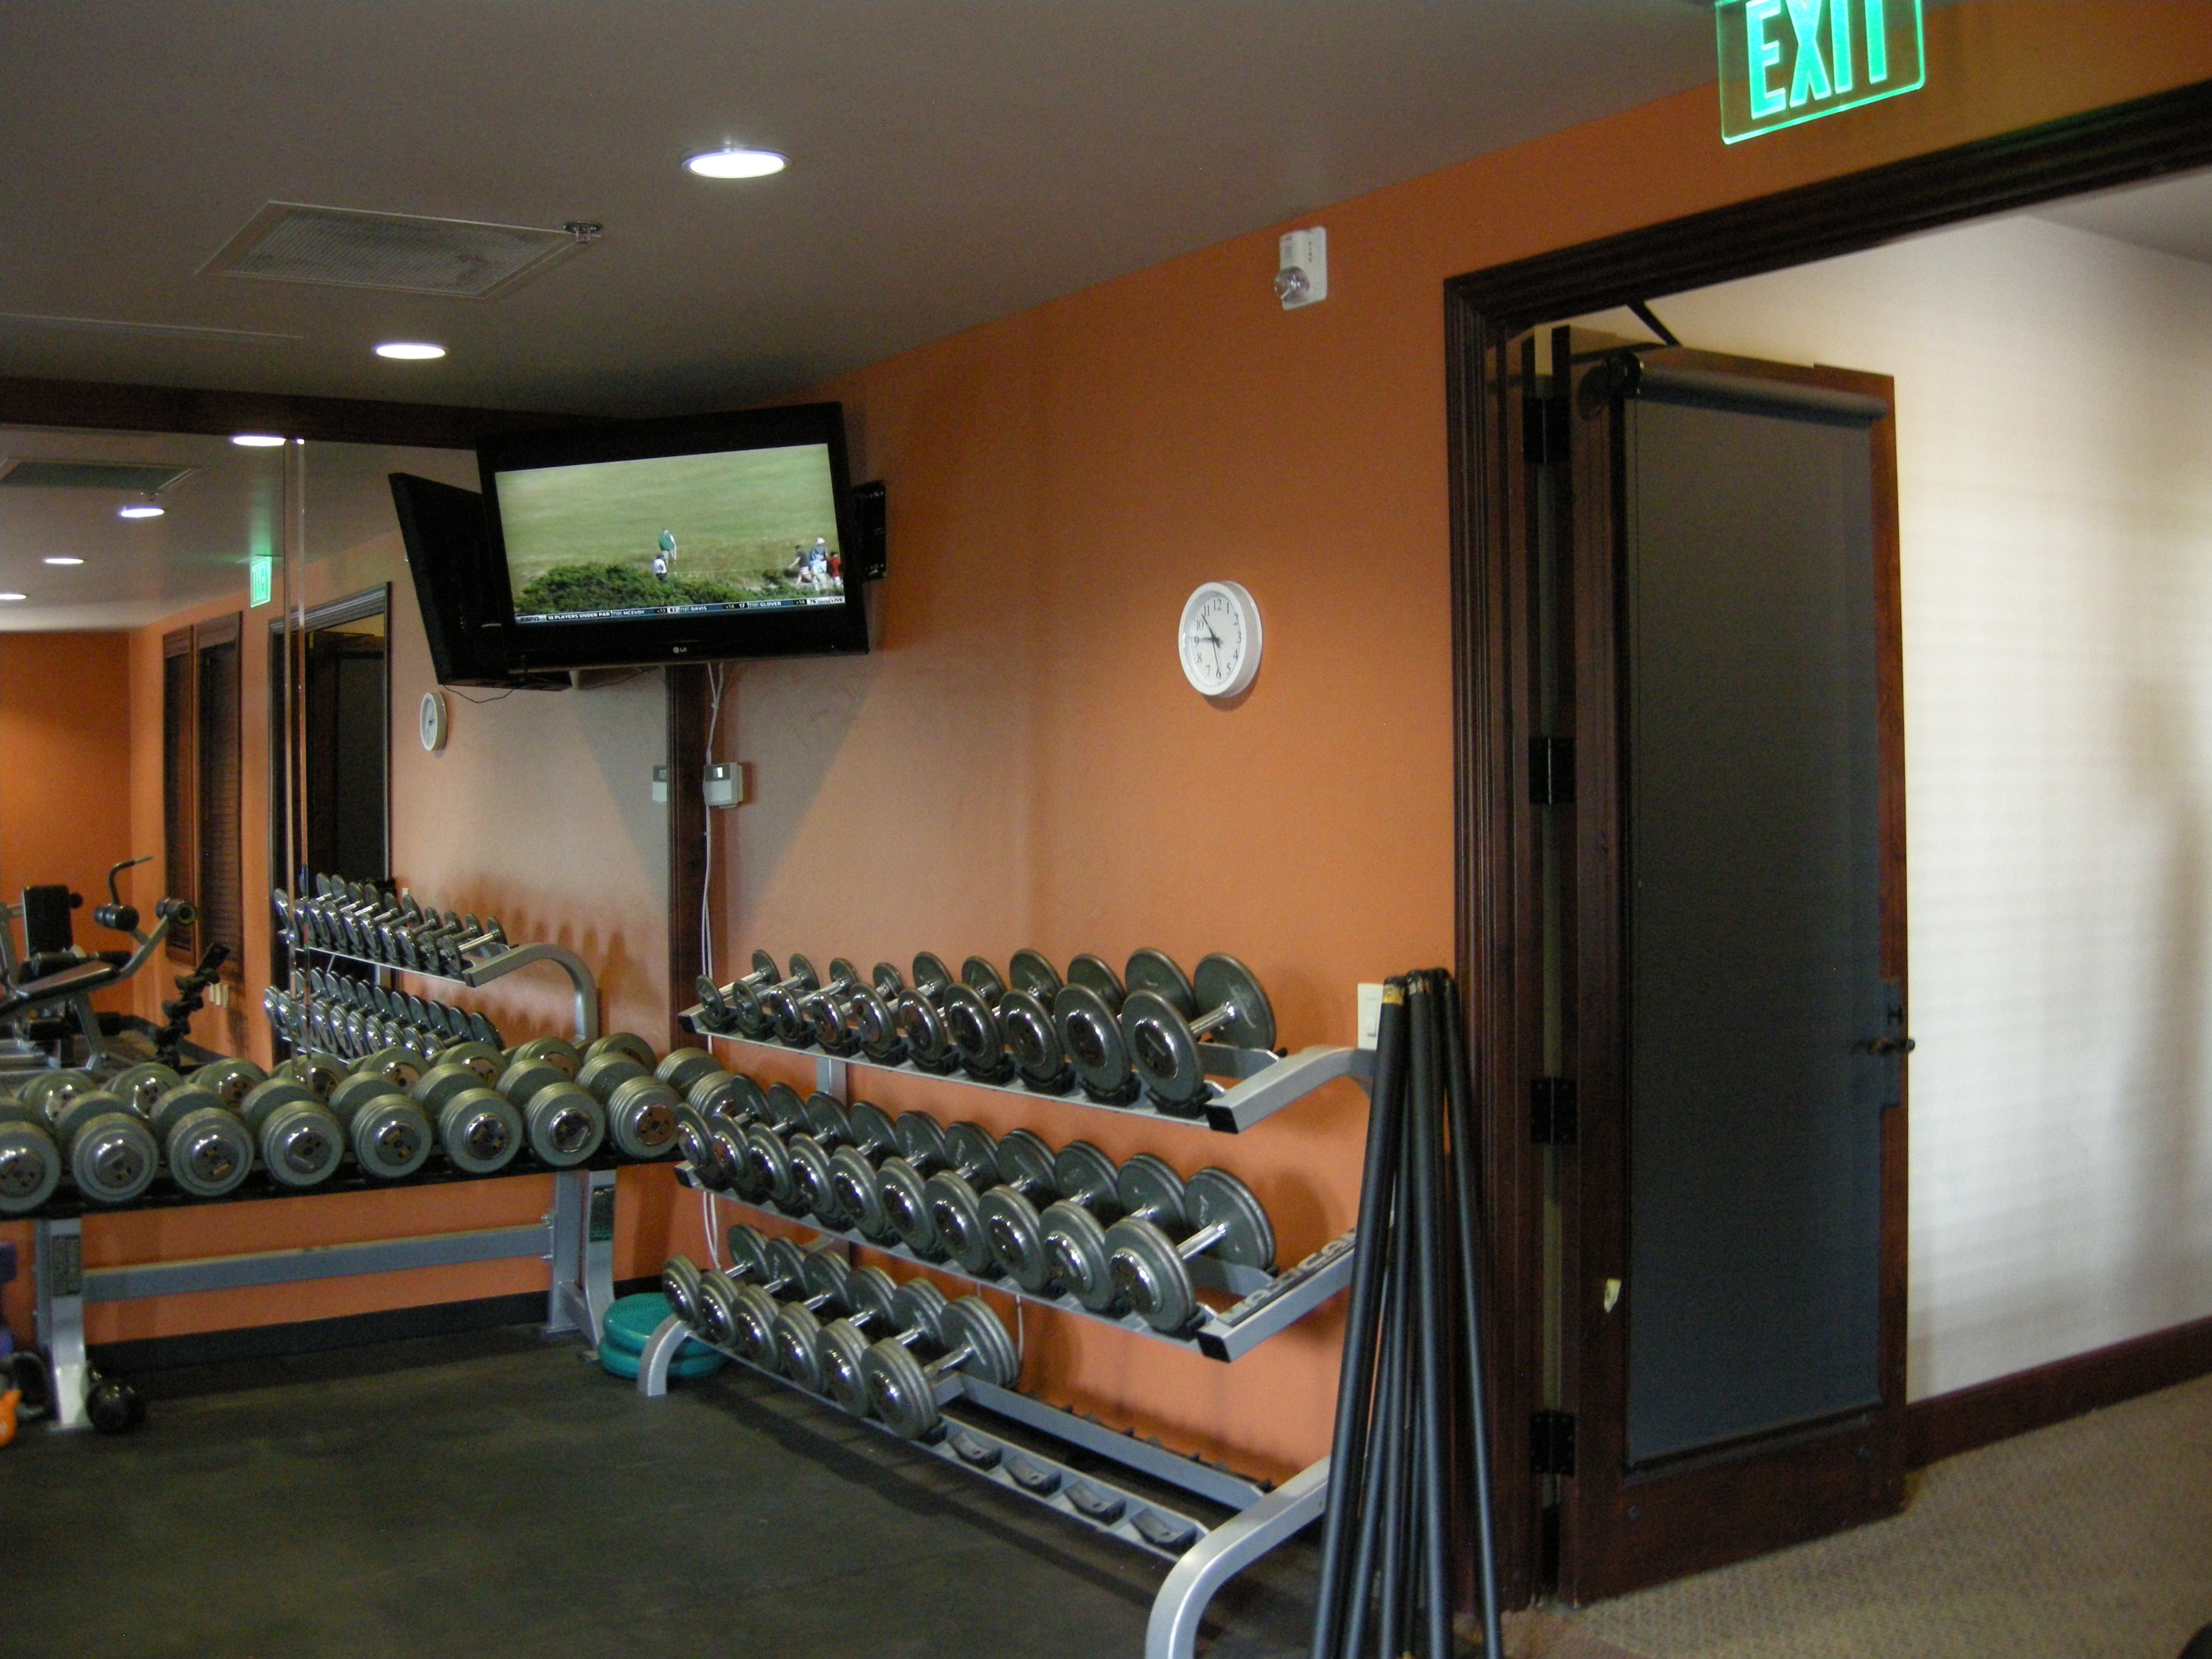 Work out room. Vista Ridge community center. Erie, CO.